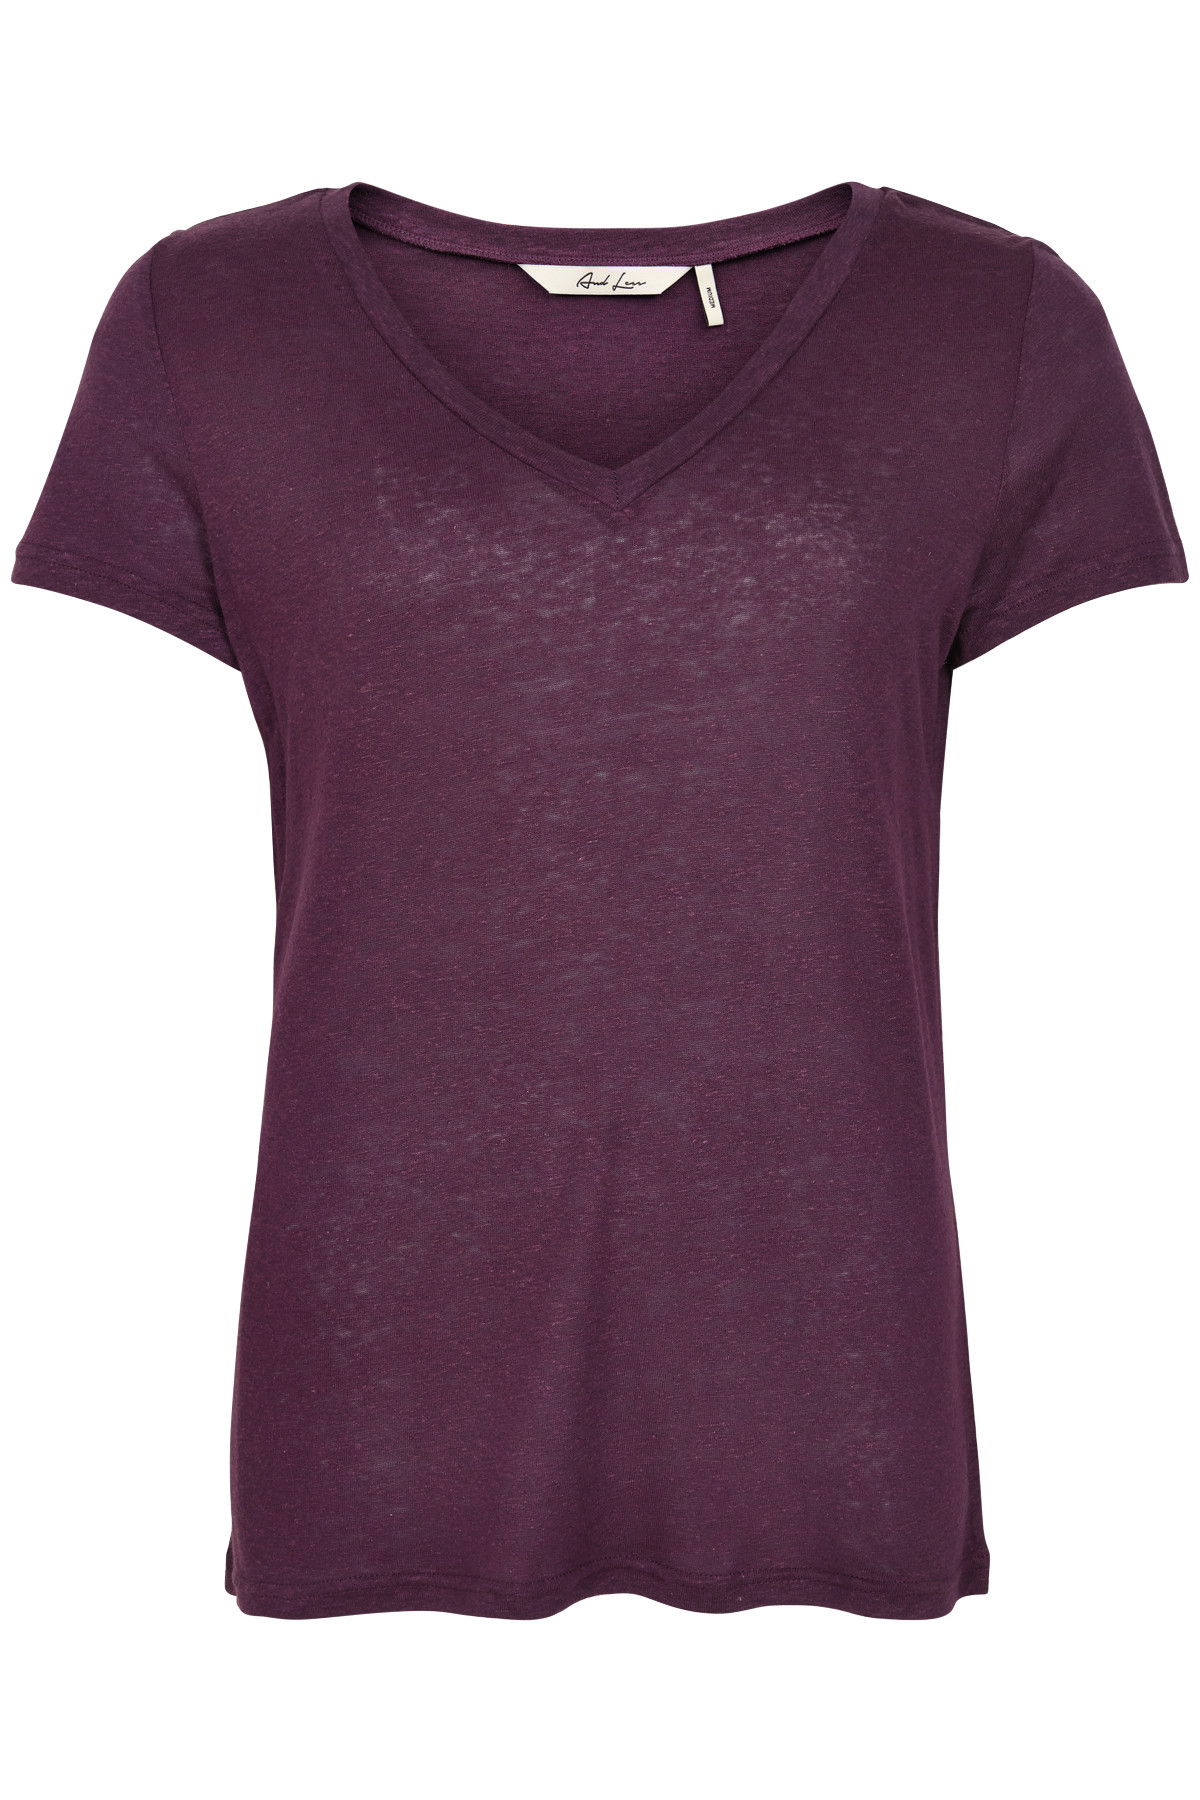 Image of   AND LESS ORSINO BLUSE 5419301 (Plum Perfect, XL)